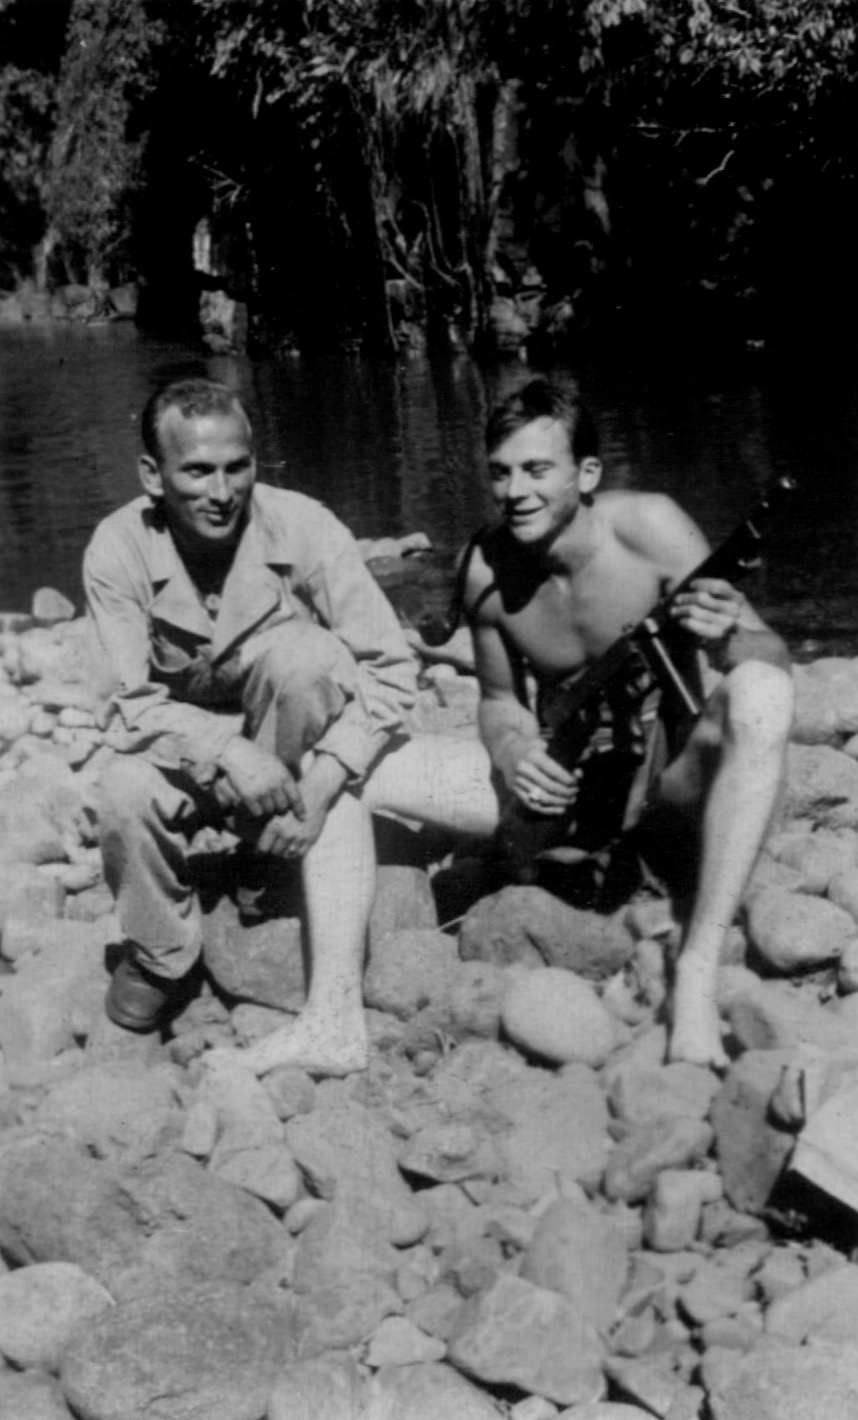 His spent a good deal of his negatives on friends,most likely in Hawaii, getting ready to start the Pacific campaign. I'm trying to find their relatives through Facebook. This was a happy time. After the campaign started, it changed him. He was never the same after the war.